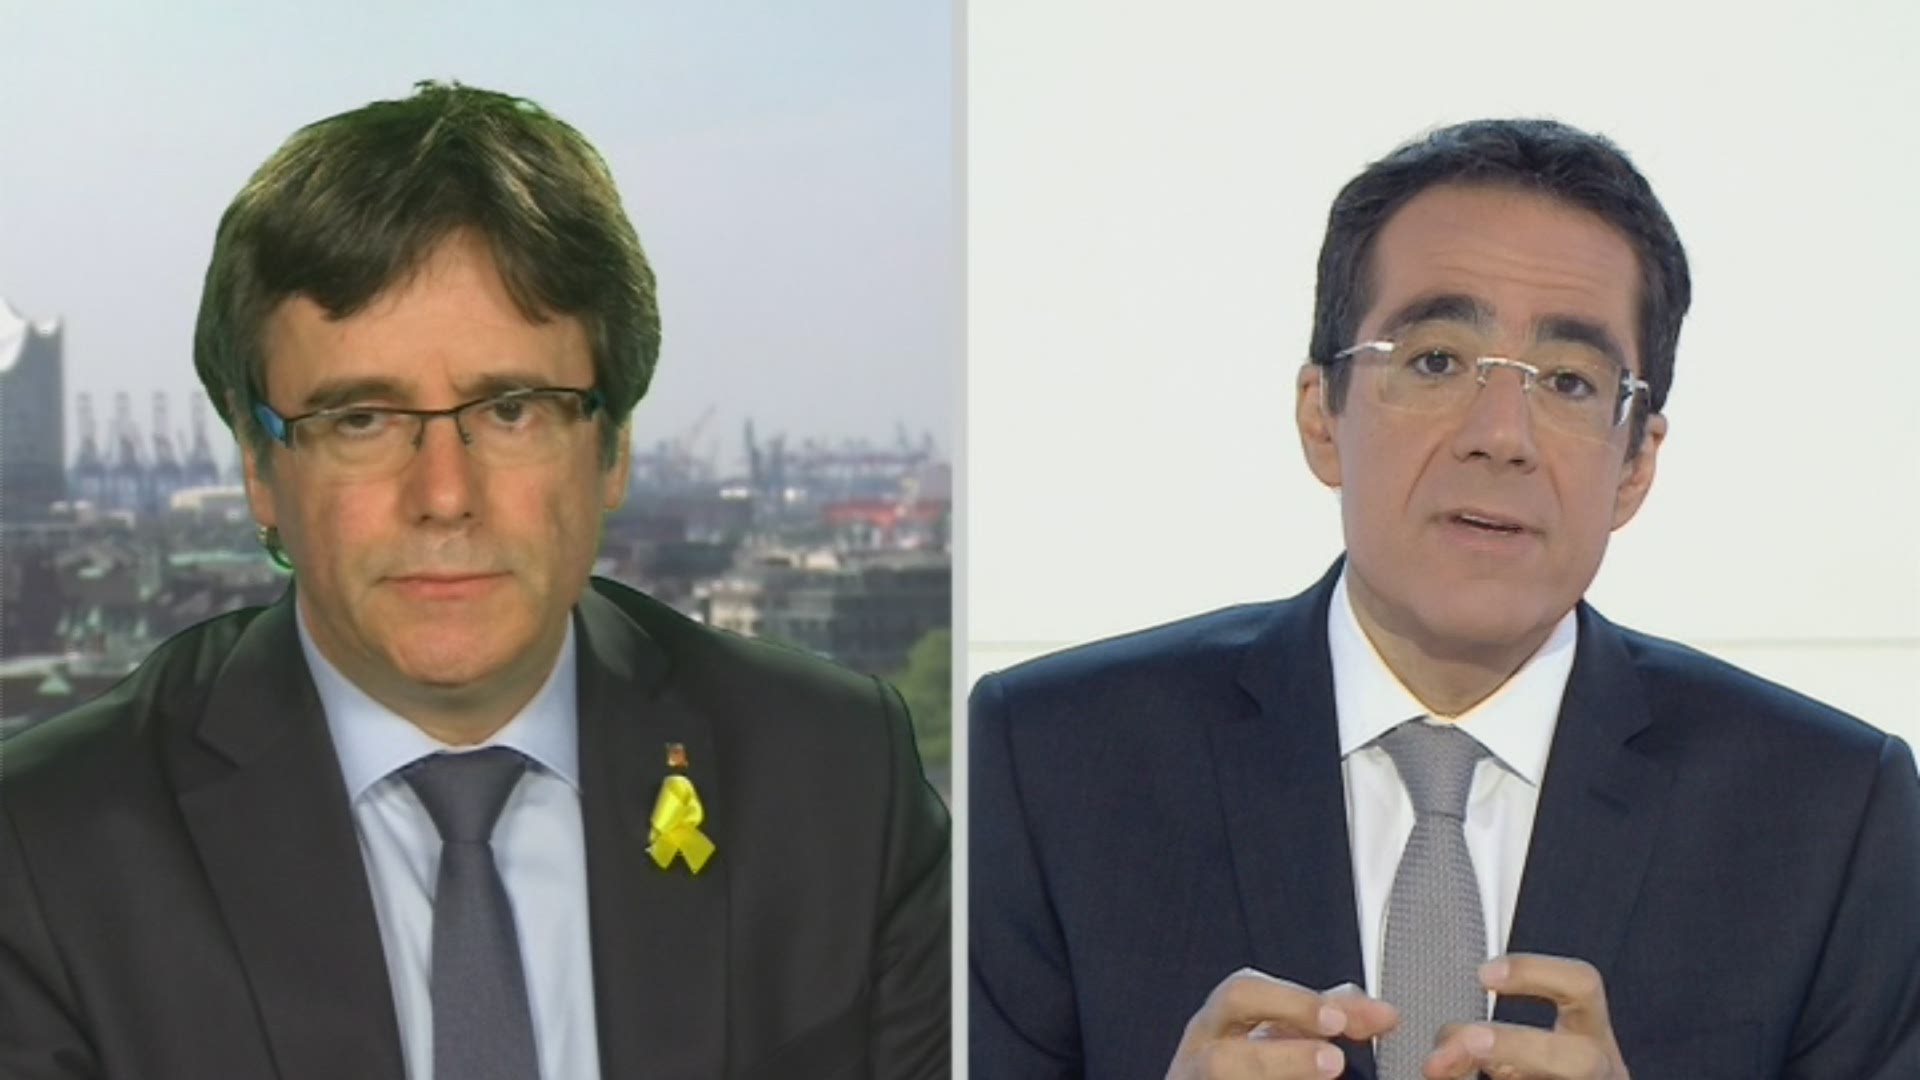 La version longue de l'interview de l'indépendantiste Carles Puigdemont